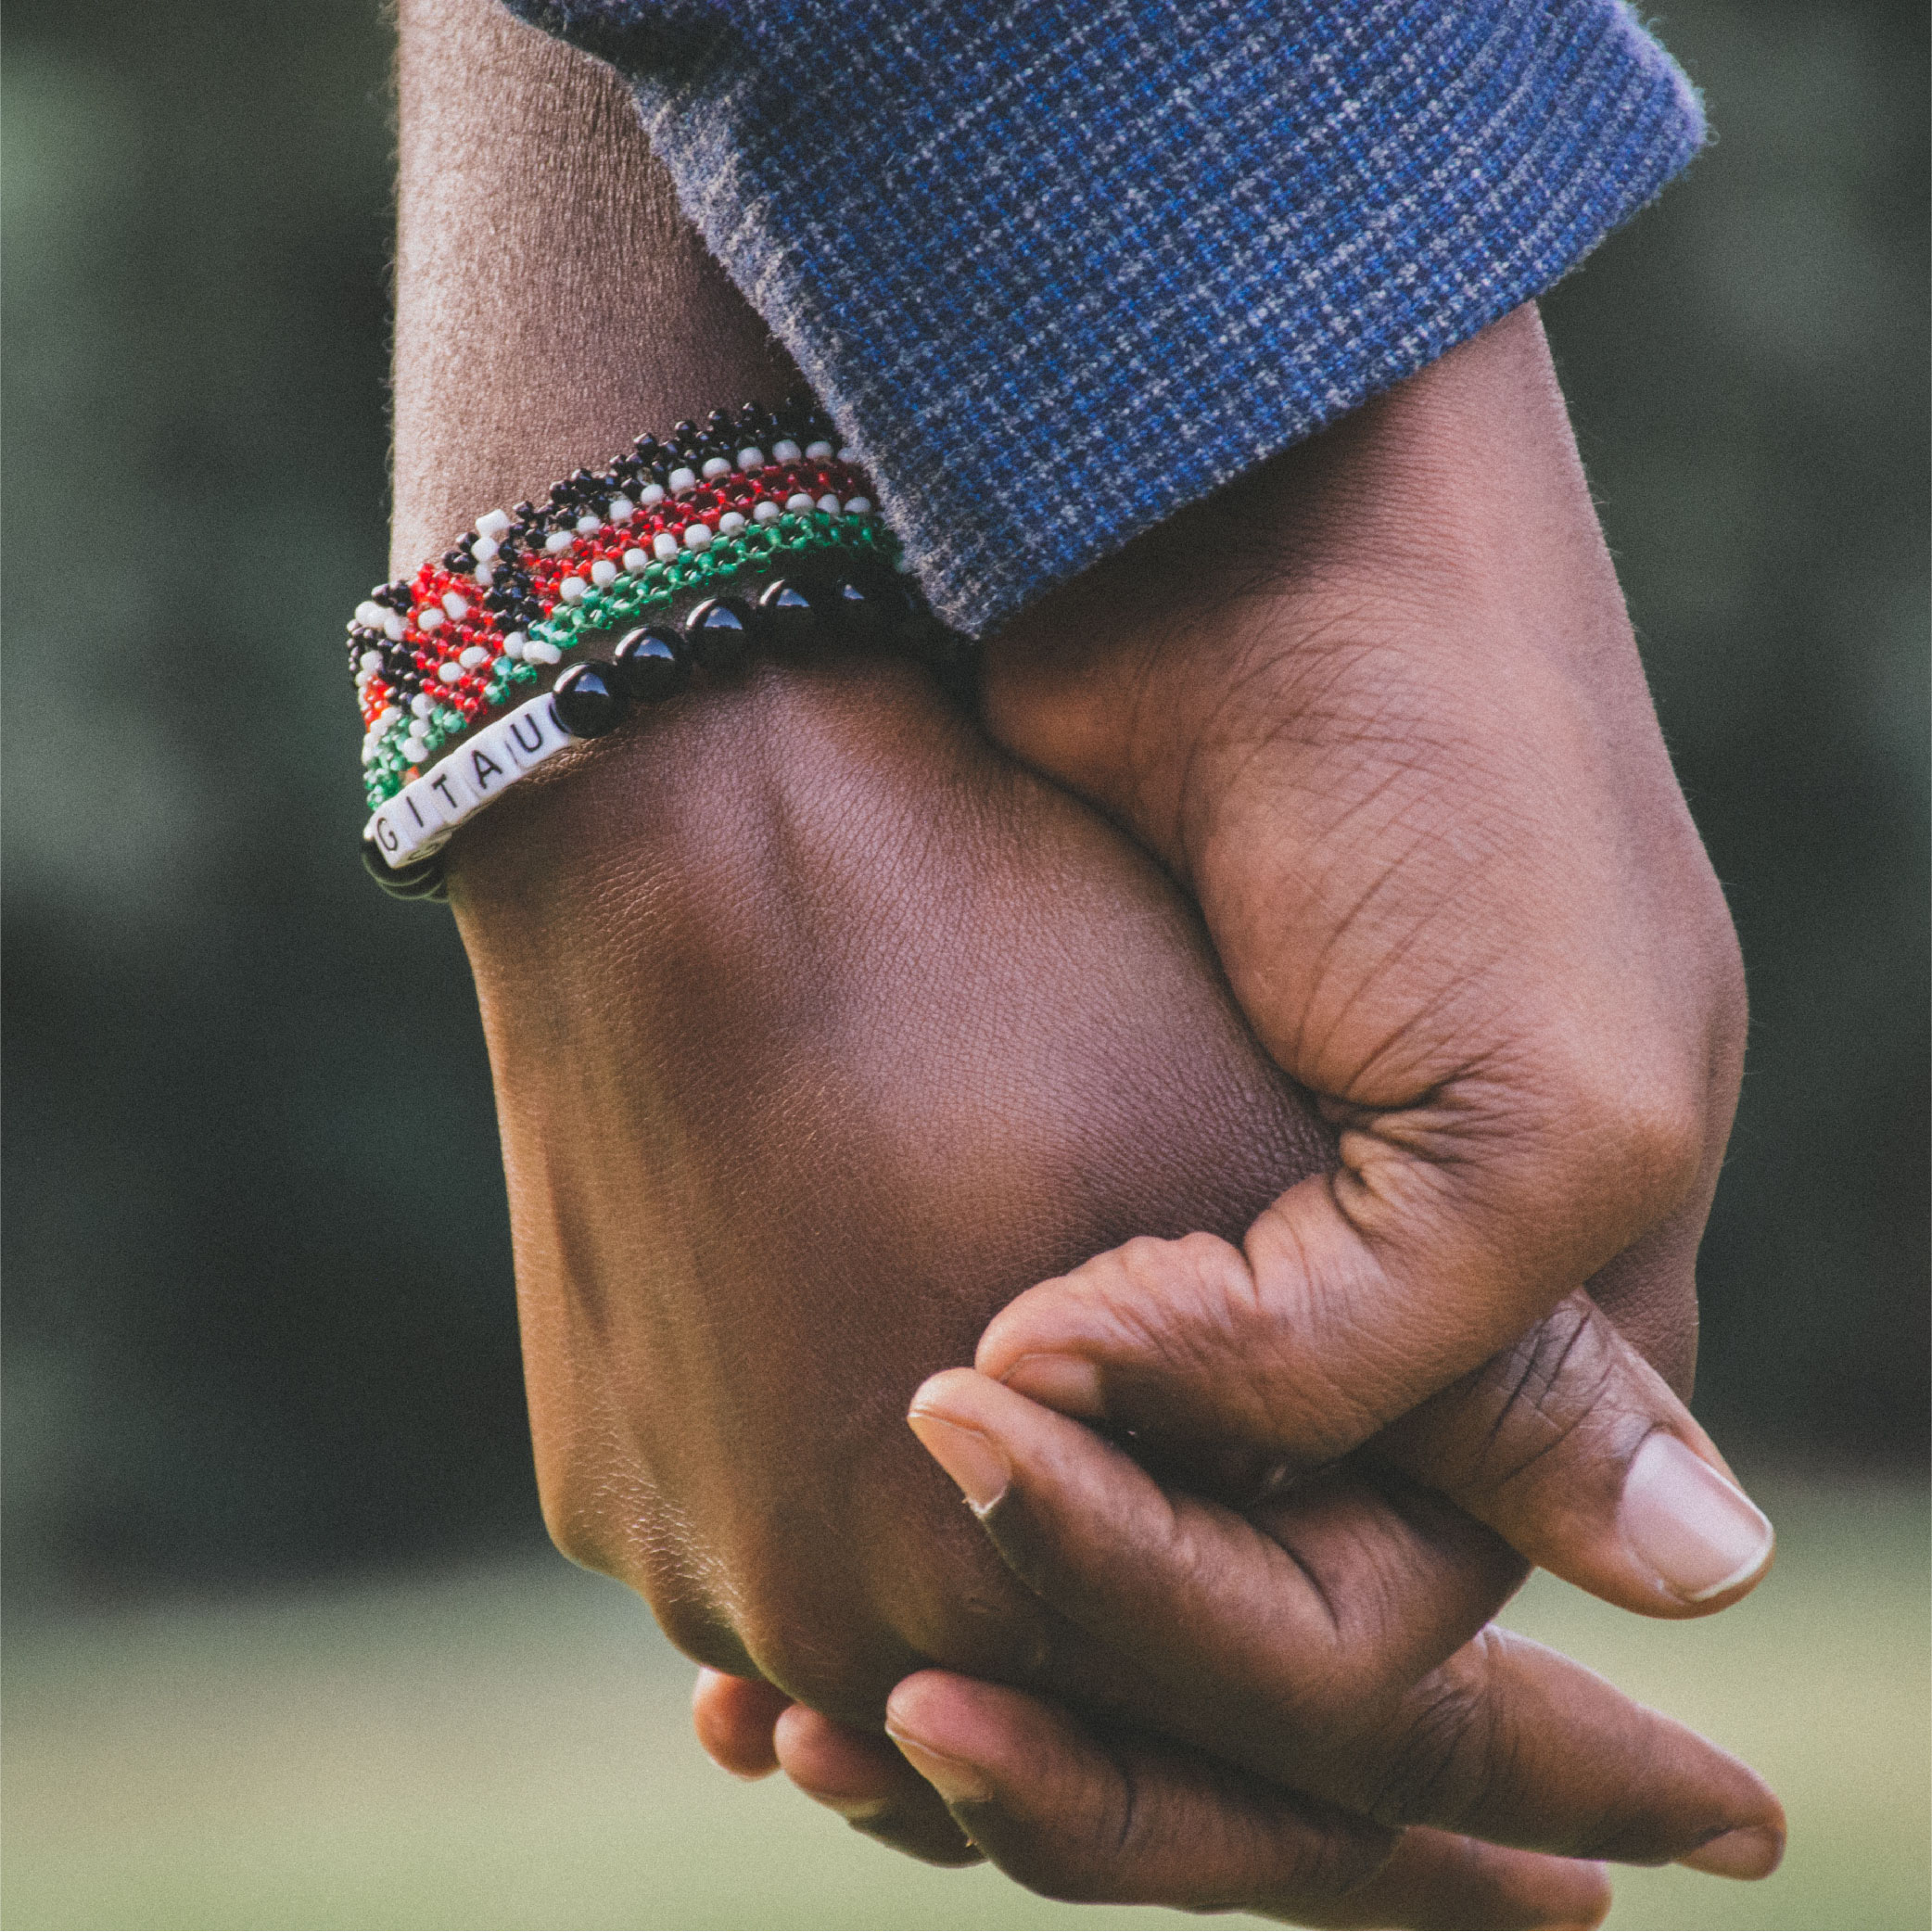 Moving Towards Healthy Relationships